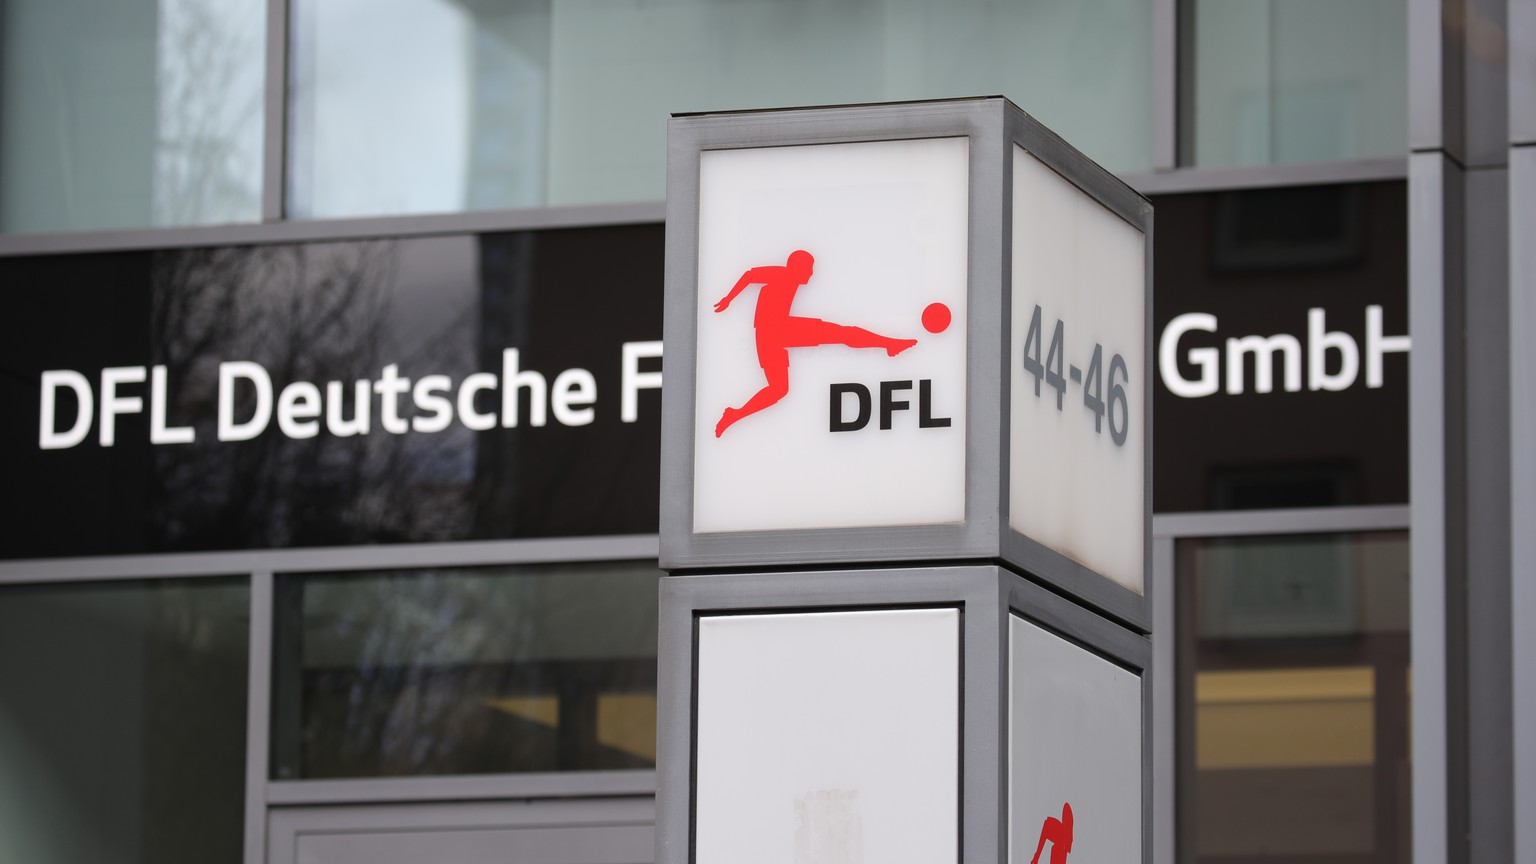 epa08291562 A general view of the entrance of German Football Association DFL (Deutsche Fussbal Liga) in Frankfurt Main, Germany, 13 March 2020. According to reports, German Football Association suspended all Bundesliga and Bundesliga 2 games from 17 March until 02 April amid coronavirus COVID-19 pandemic. This weekend games will be played behind closed doors.  EPA/ARMANDO BABANI